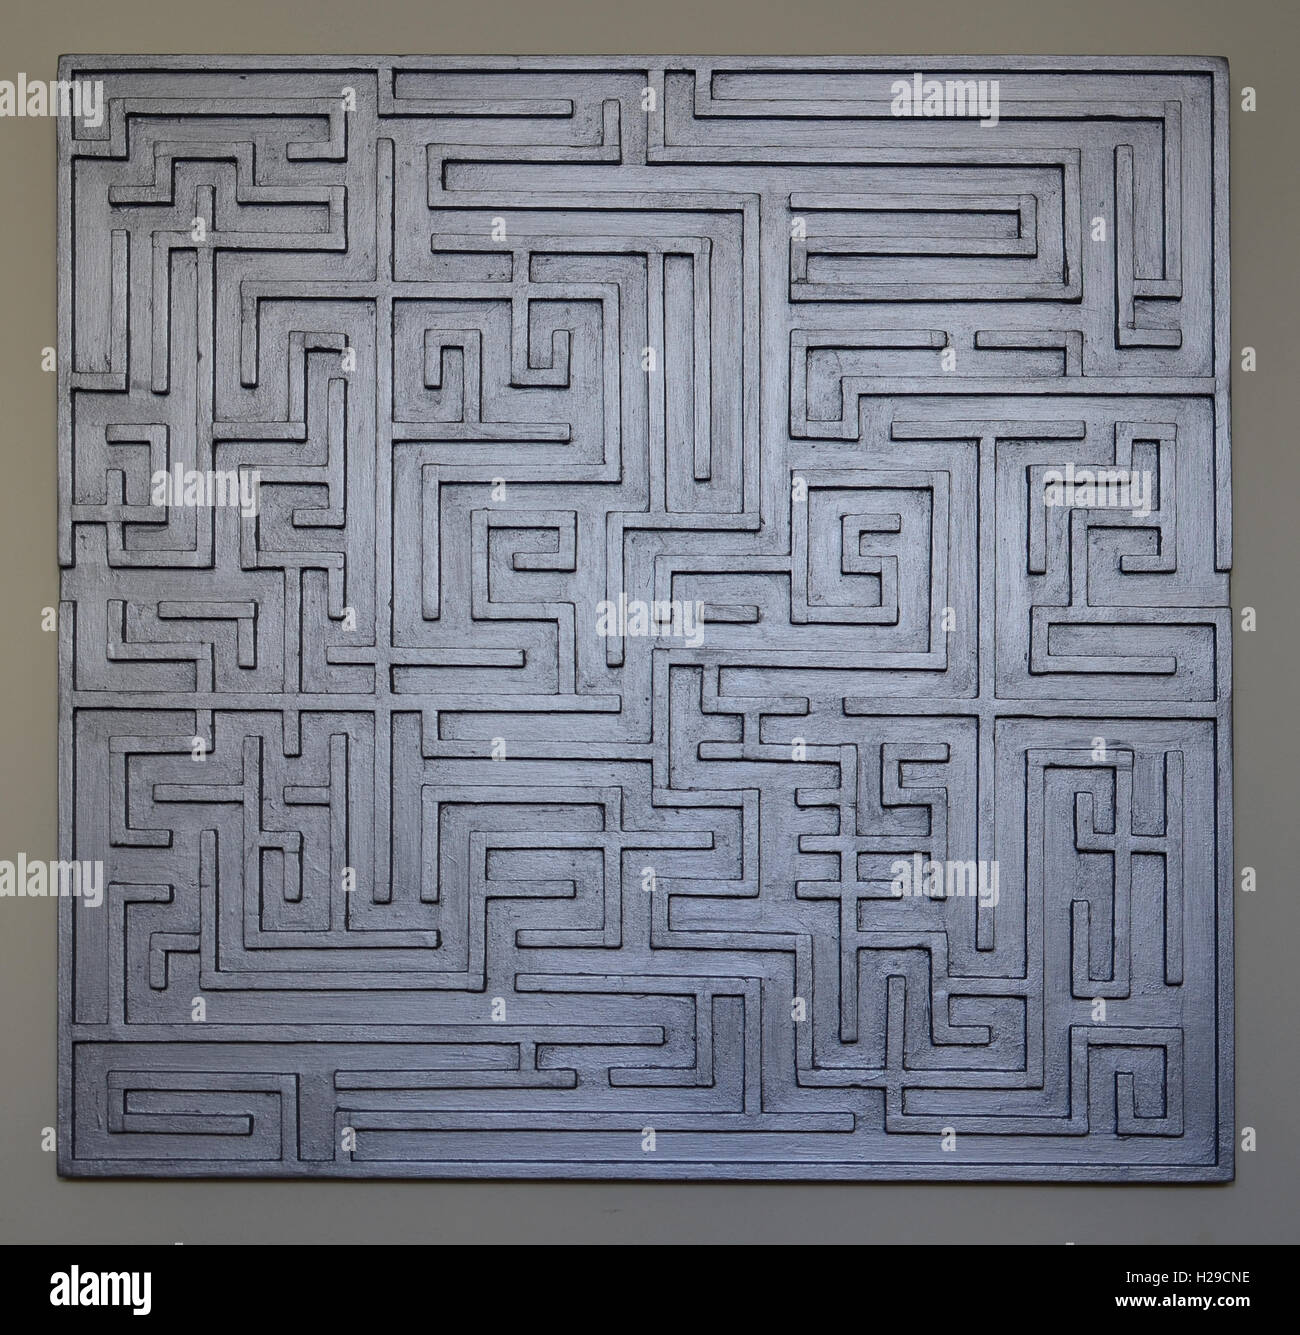 Pictures taken during the construction of handmade wooden labyrinths and mazes decorative panels and some mosaics - Stock Image